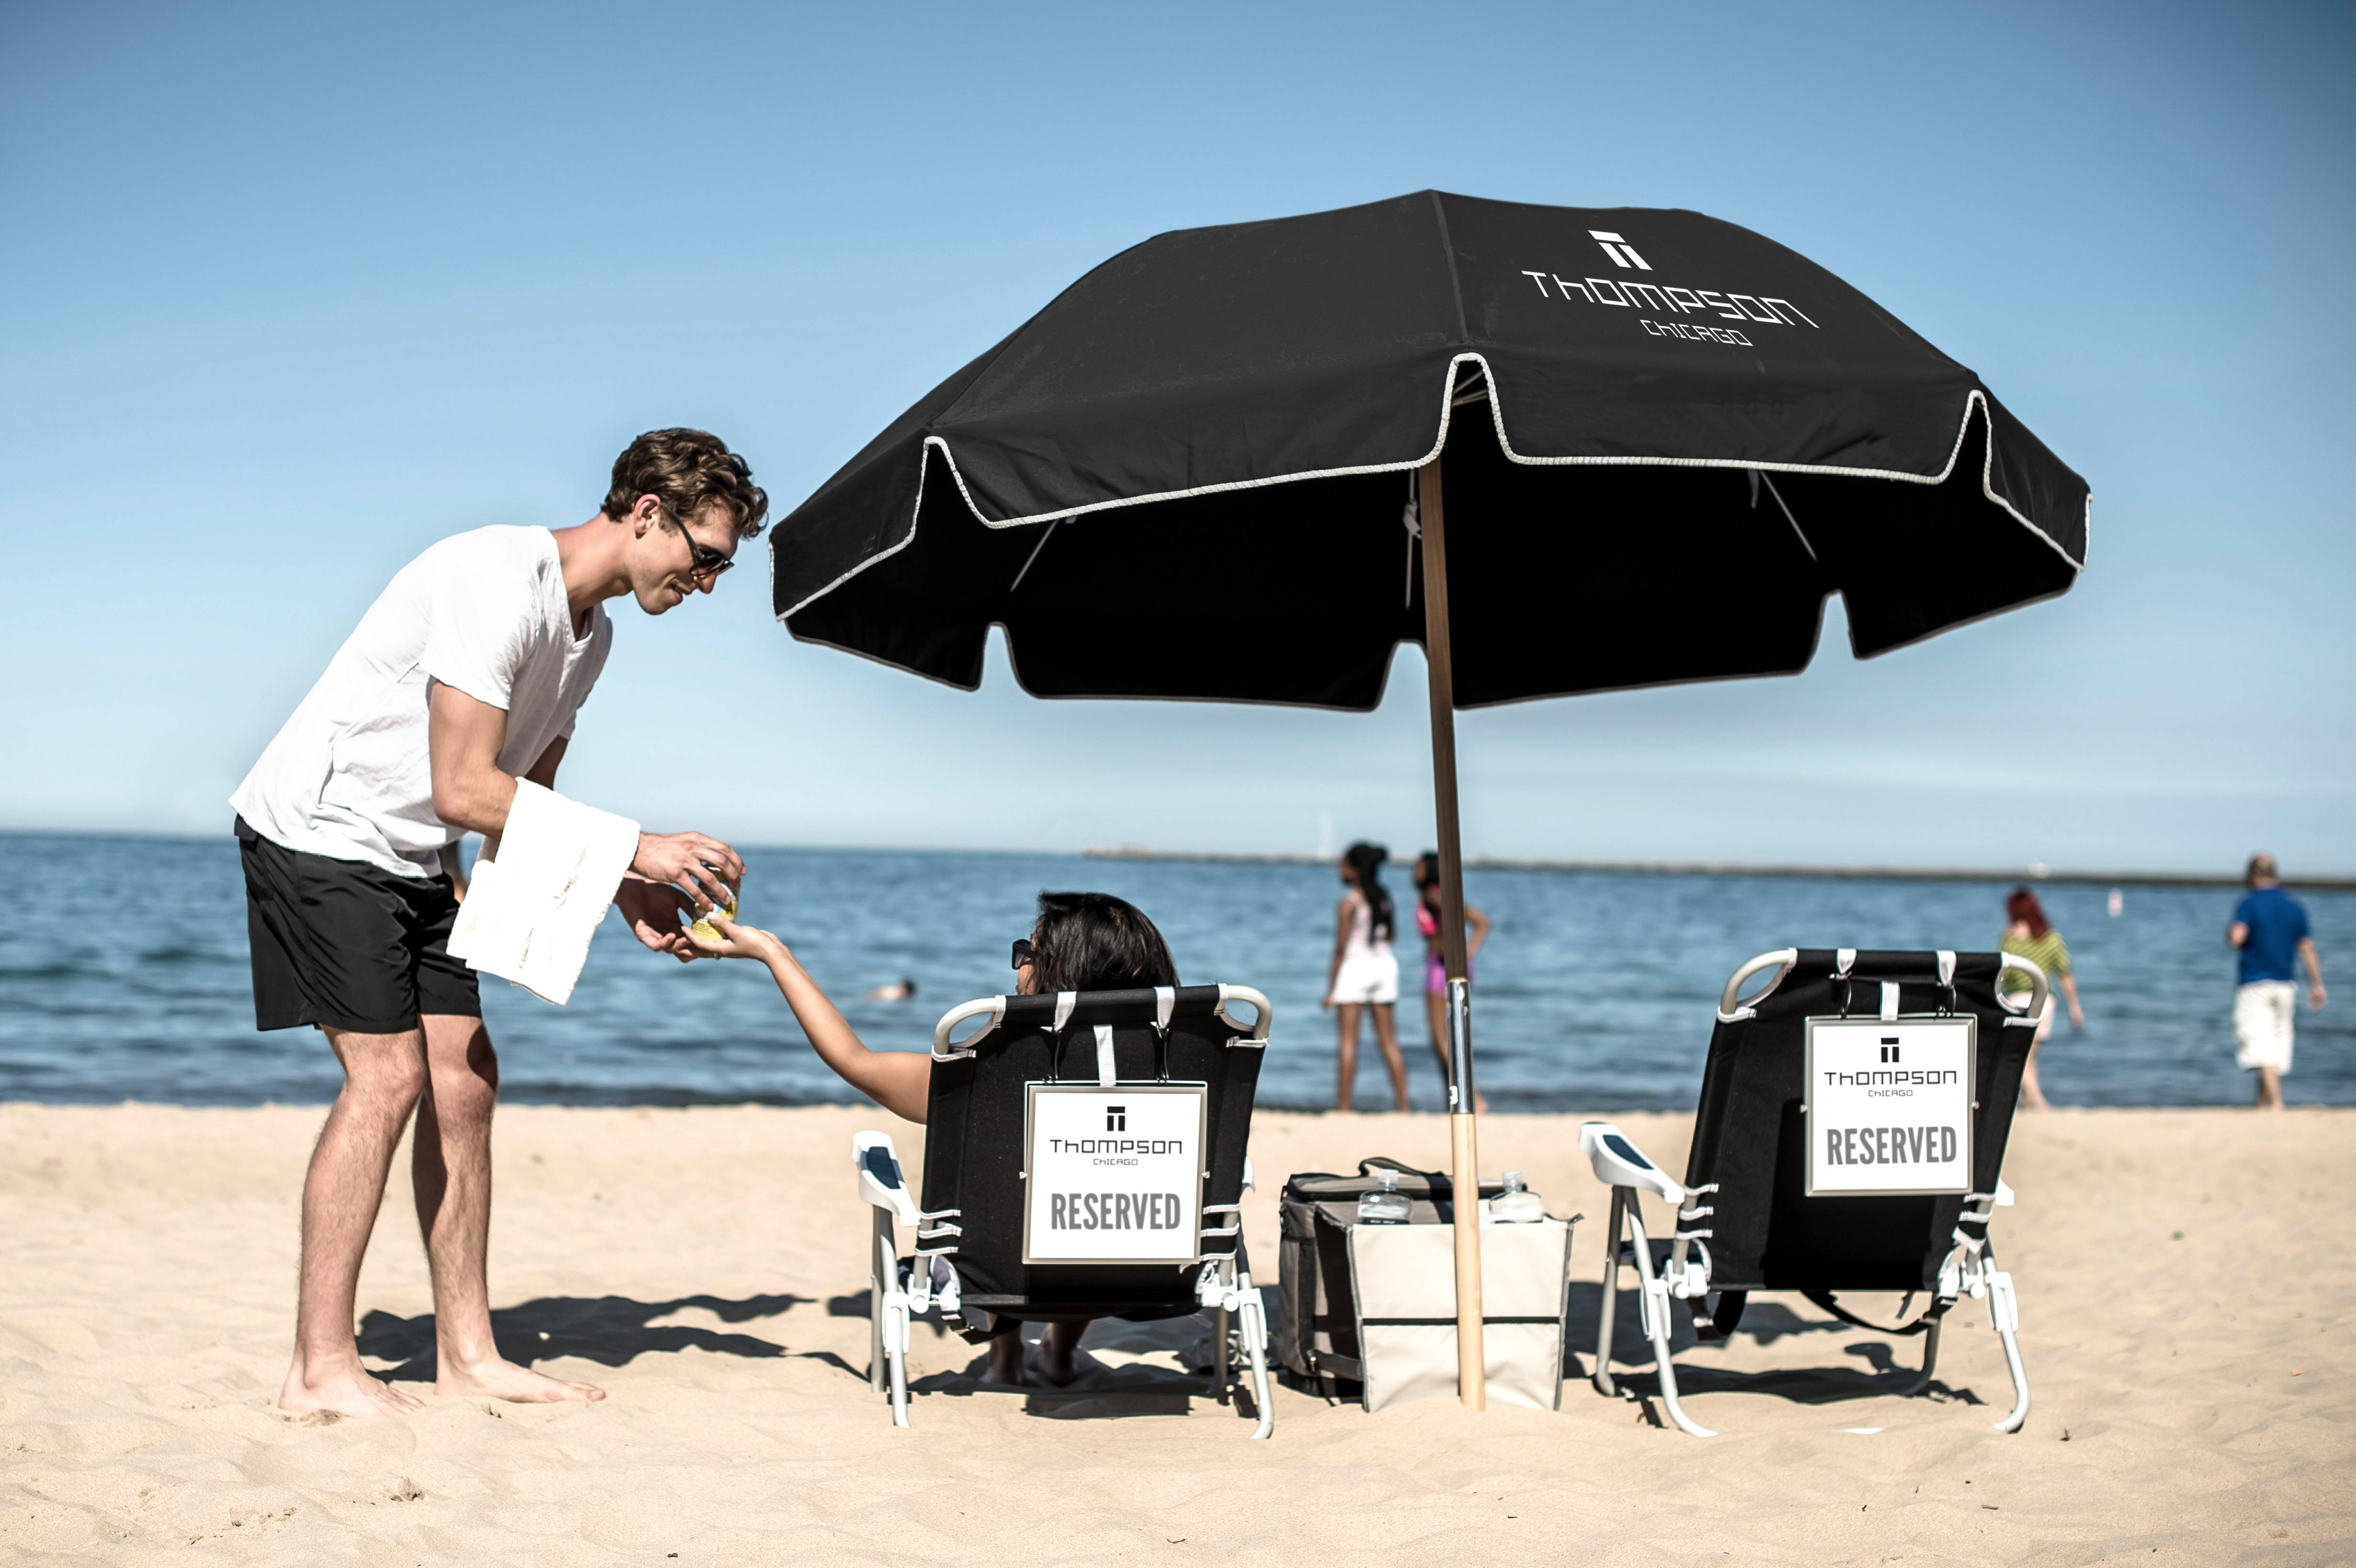 Thompson Chicago's Beach Butler service, offered throughout beach season, makes it easy for hotel guests to soak up the sun on the lakefront without having to carry beach chairs and towels.